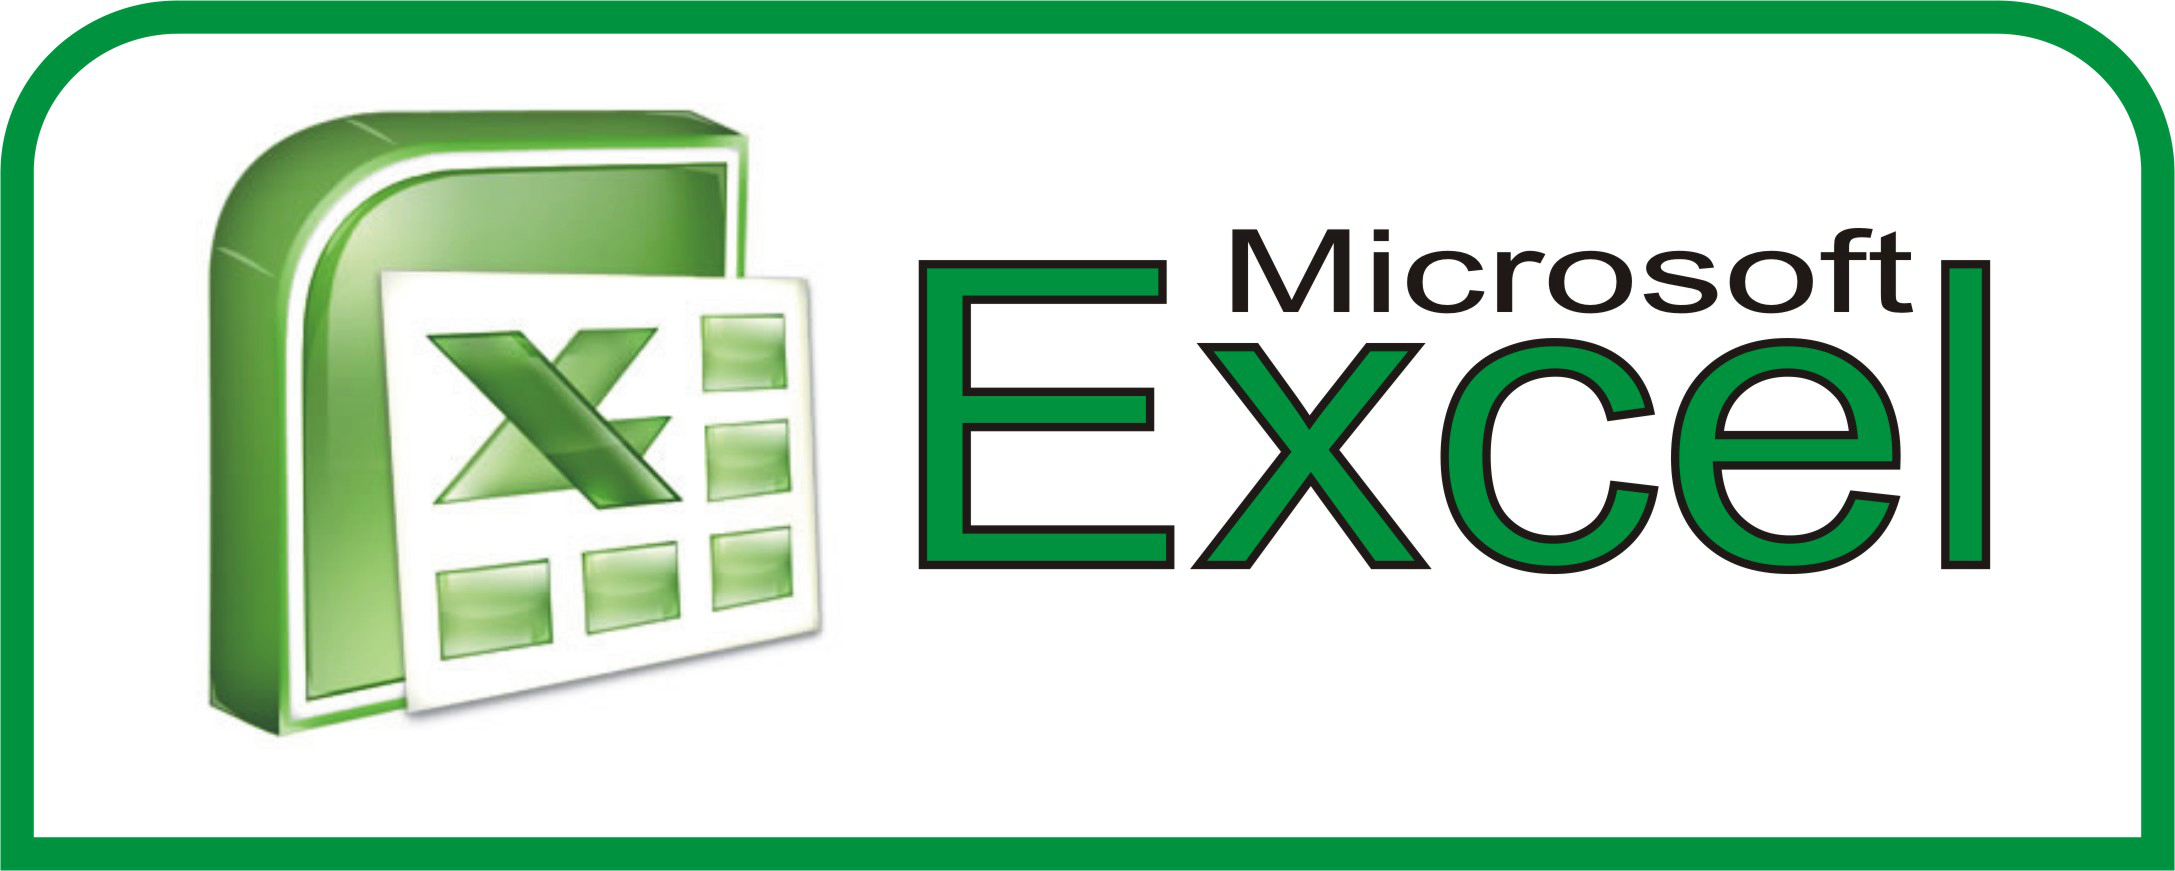 Ediblewildsus  Splendid  Excel Shortcuts You Probably Didnt Know About  Techdissected With Fair Min Value Excel Besides Countifs Excel  Furthermore Model Cash Flow Excel Romana With Delightful Excel Vba Formularc Also Analysis Tool Excel In Addition Heatmap In Excel And Microsoft Excel In Business As Well As Win Loss Chart In Excel Additionally Multiple Hyperlinks In Excel From Techdissectedcom With Ediblewildsus  Fair  Excel Shortcuts You Probably Didnt Know About  Techdissected With Delightful Min Value Excel Besides Countifs Excel  Furthermore Model Cash Flow Excel Romana And Splendid Excel Vba Formularc Also Analysis Tool Excel In Addition Heatmap In Excel From Techdissectedcom